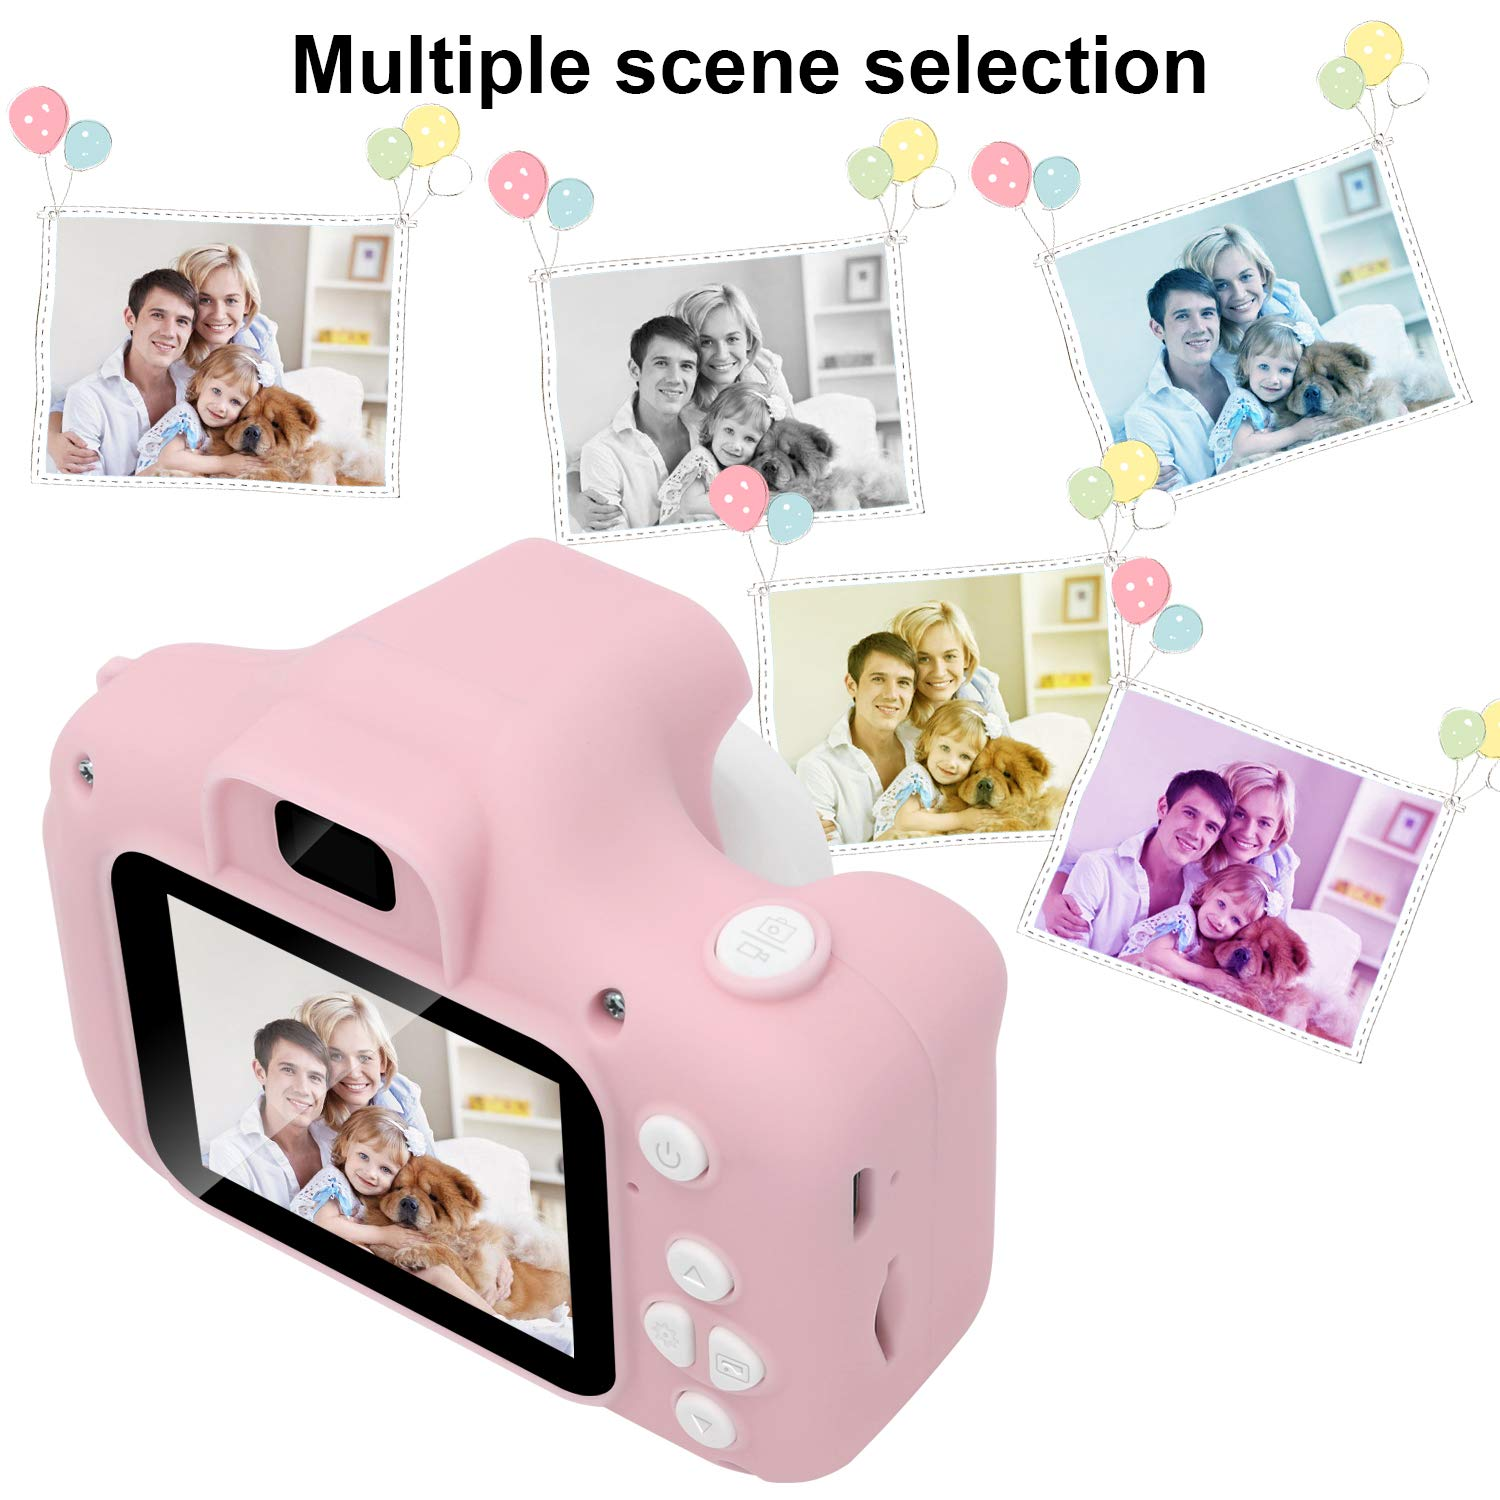 DDGG Kids Digital Camera for Girls Age 3-10,Toddler Cameras Child Camcorder Mini Cartoon Pink Rechargeable Camera Shockproof 8MP HD Children Video Record Camera (16GB Memory Card Included) by DDGG (Image #5)